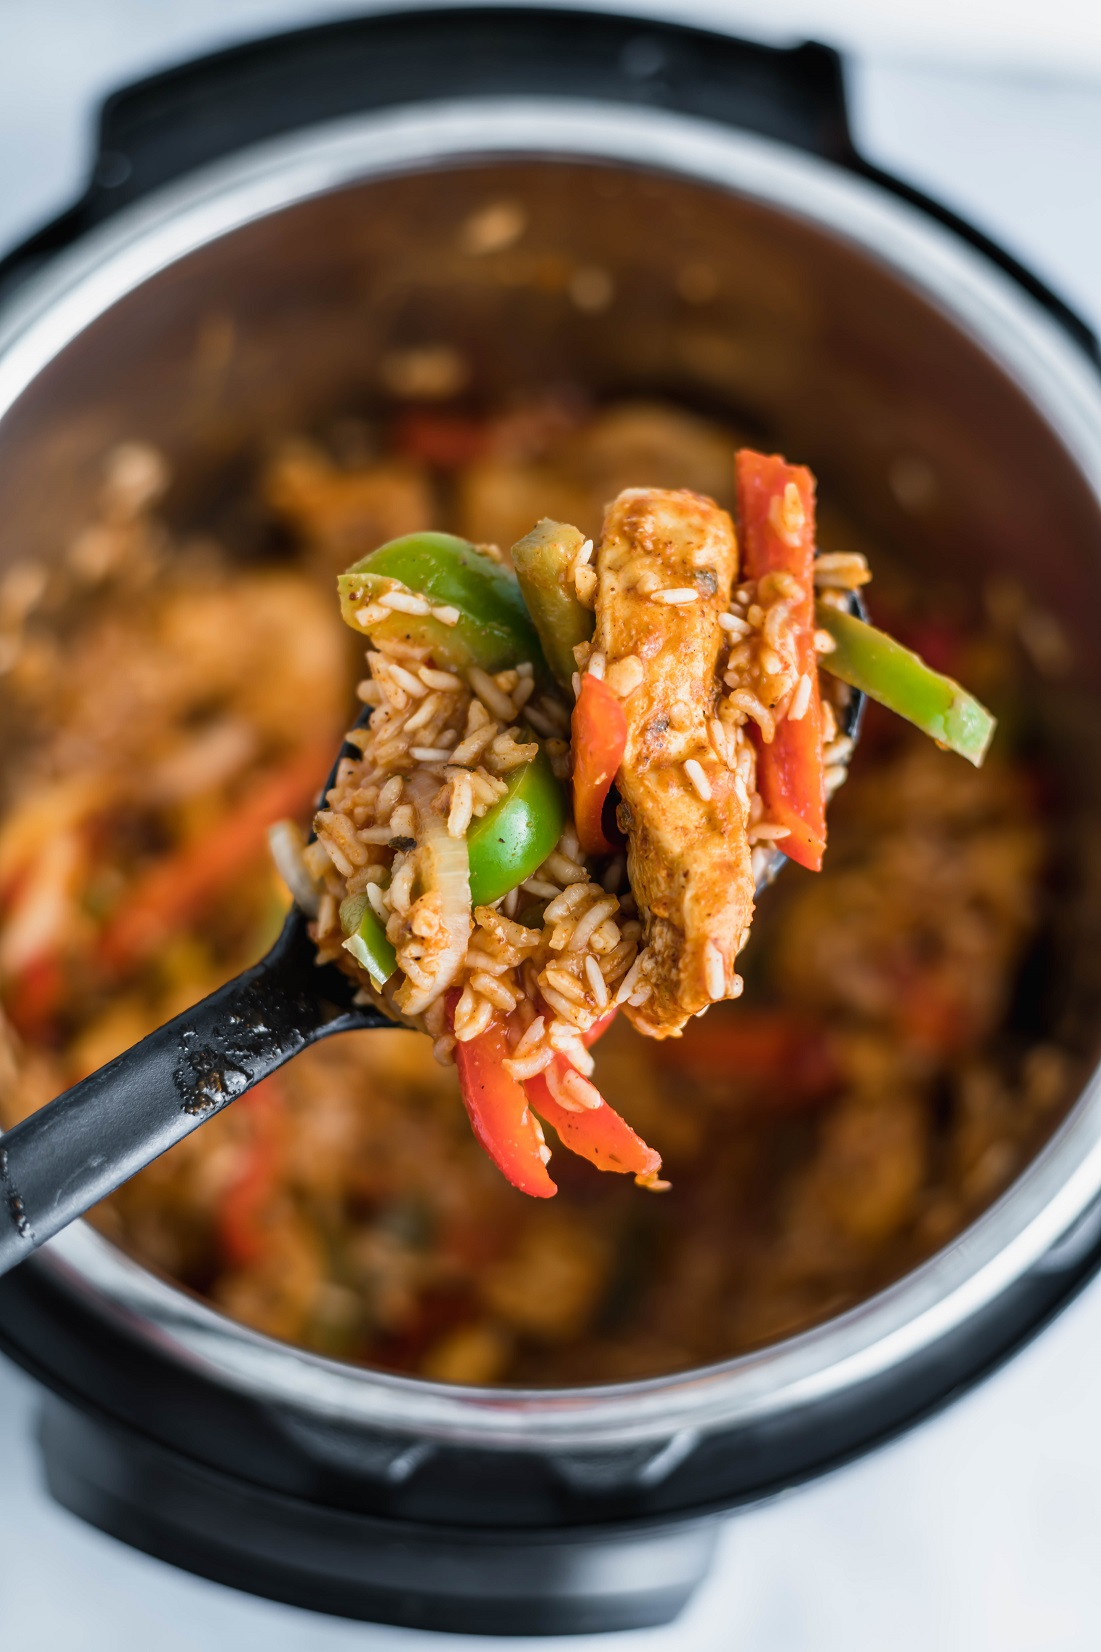 Need an easy, flavorful dinner with little effort? This Instant Pot Fajita Chicken and Rice is a meal in one pot that everyone will love.